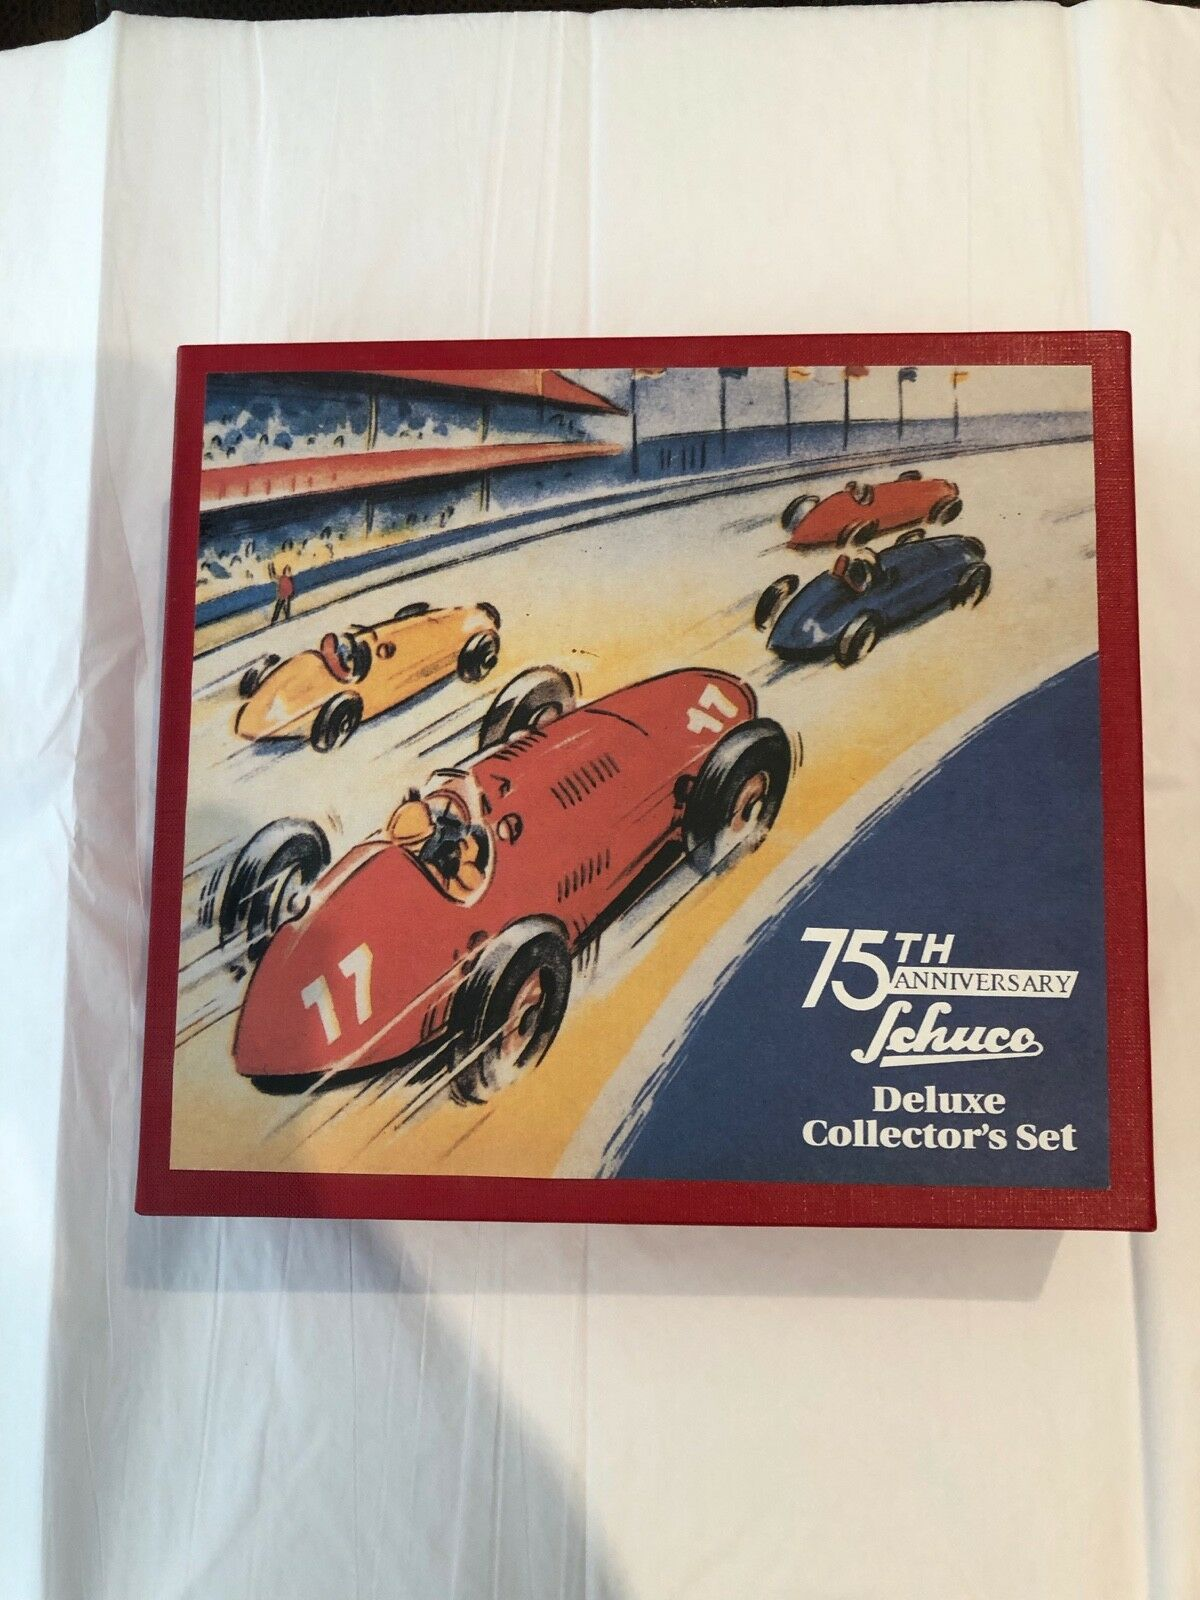 NOS Mint Schuco 75th Anniversary Deluxe Boxed Set Germany Red Mercedes Racers